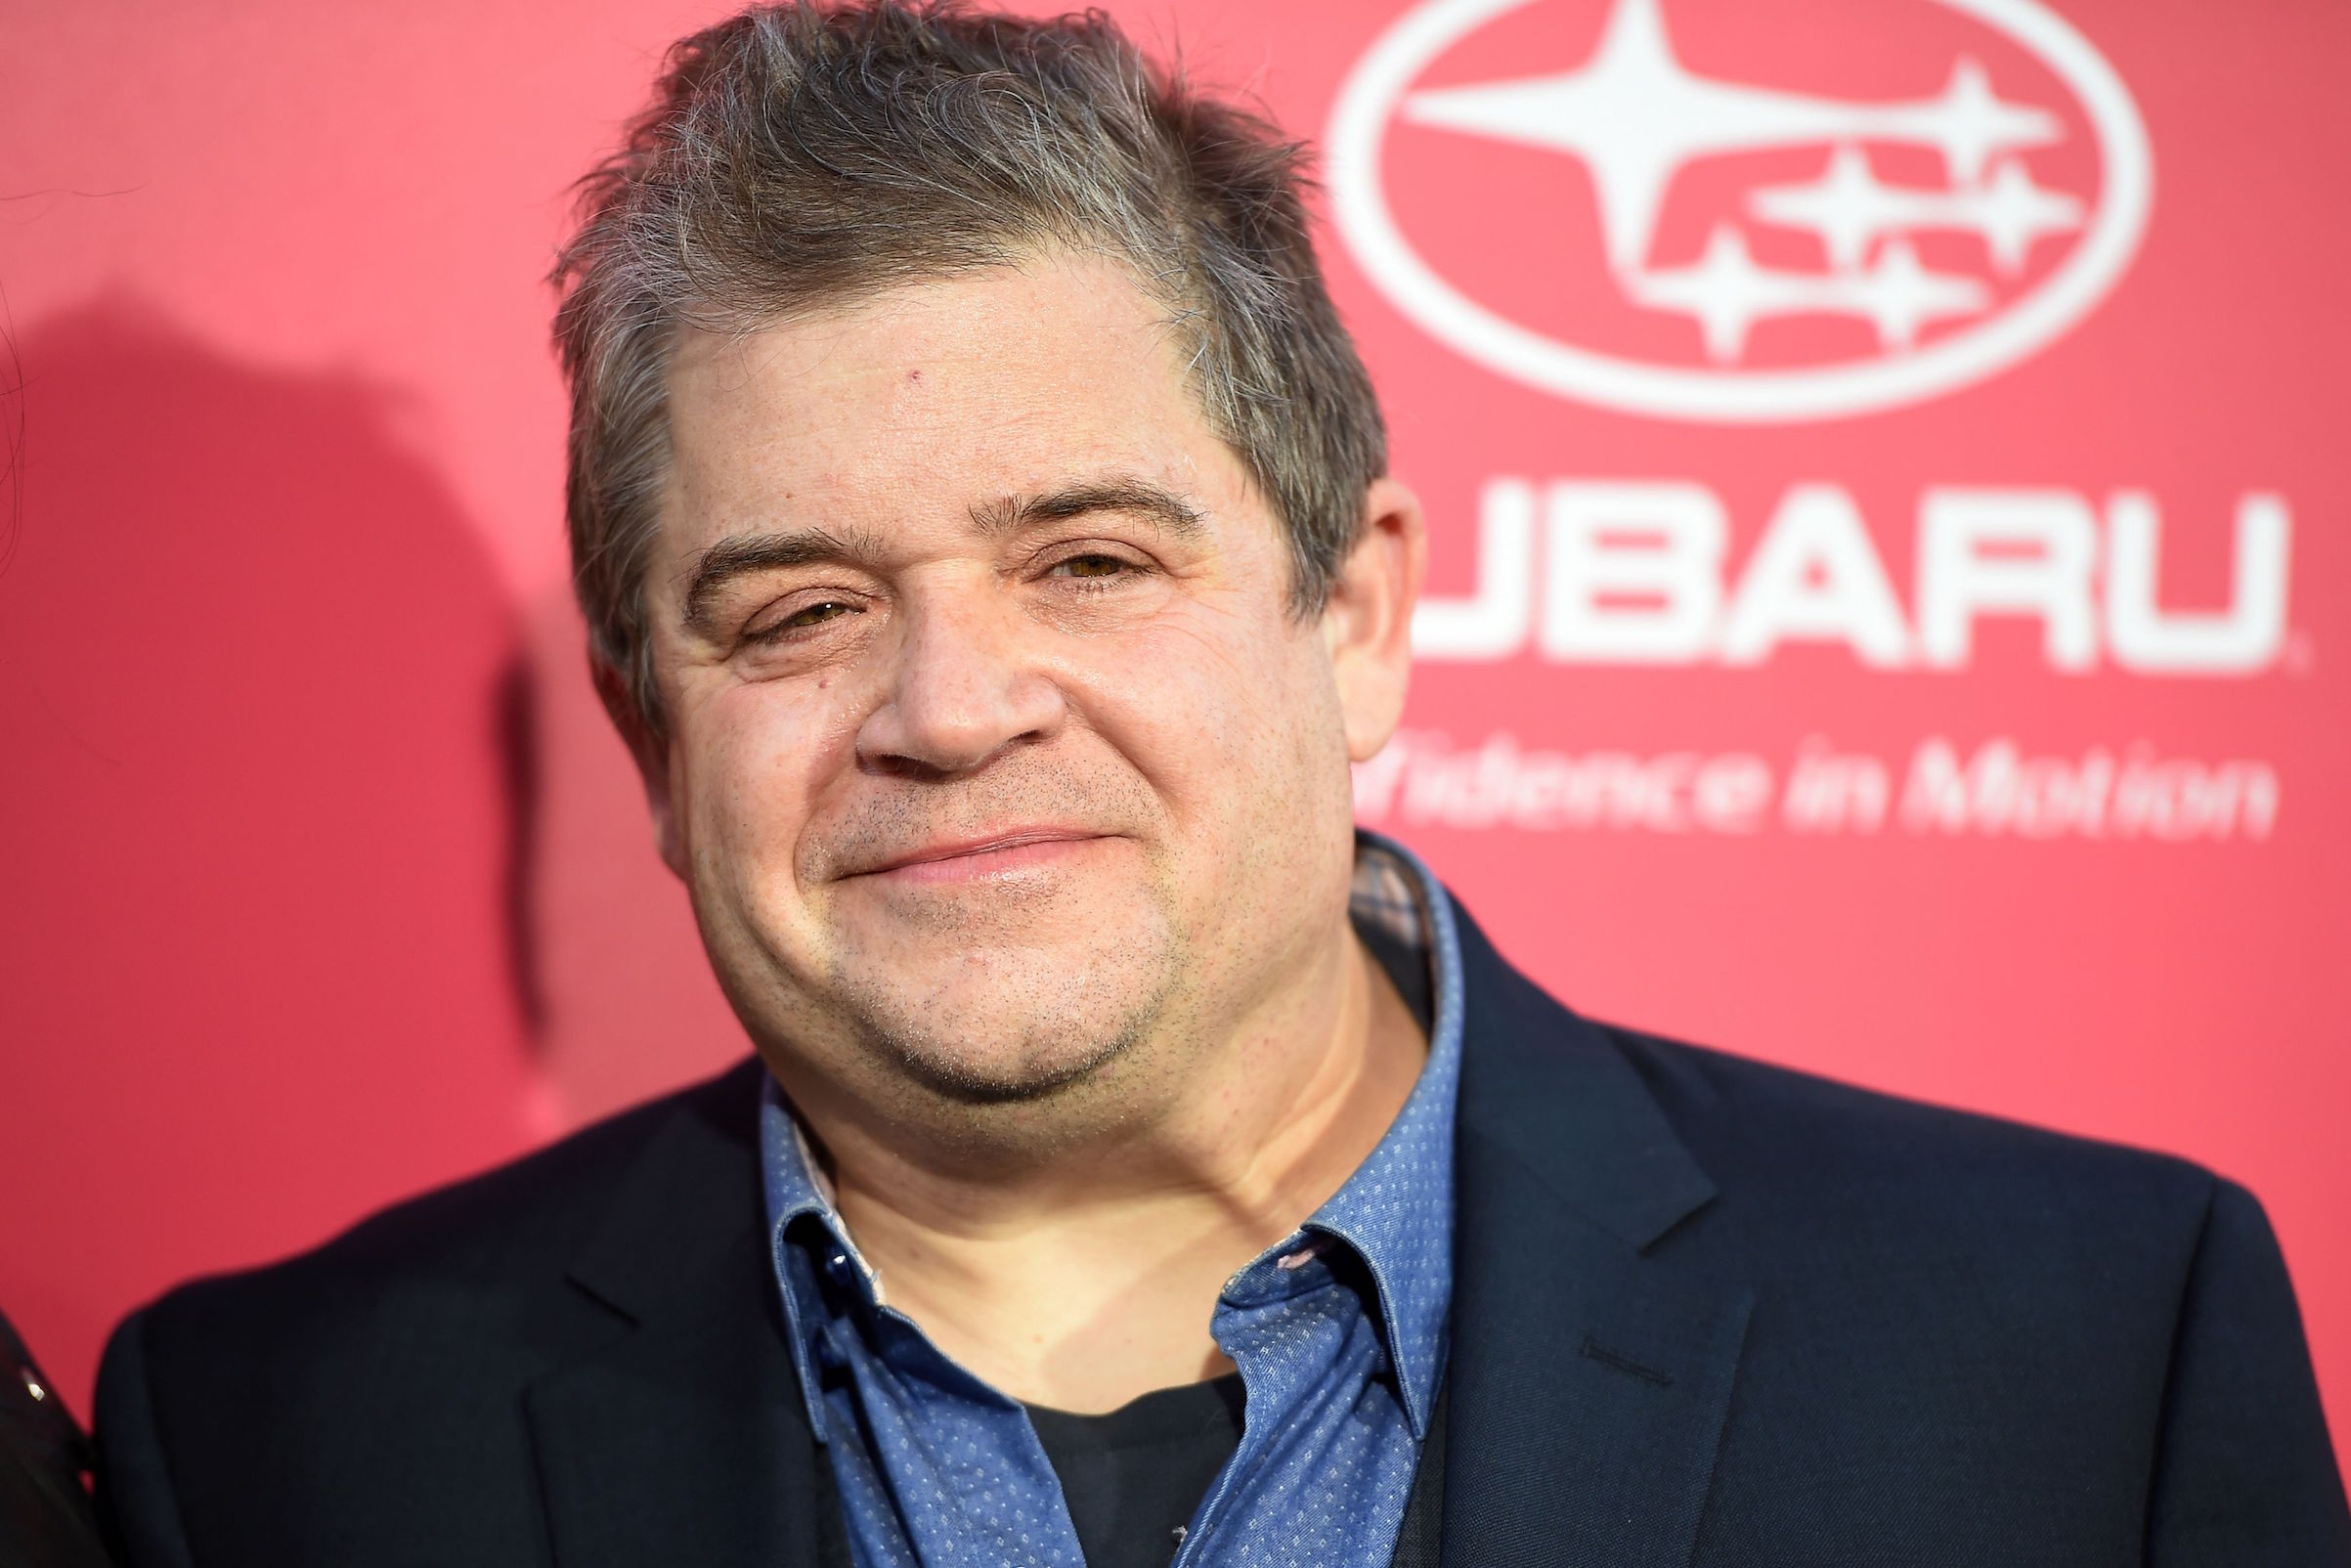 Patton Oswalt attends the premiere of  Baby Driver  in Los Angeles, California, on June 14, 2017.